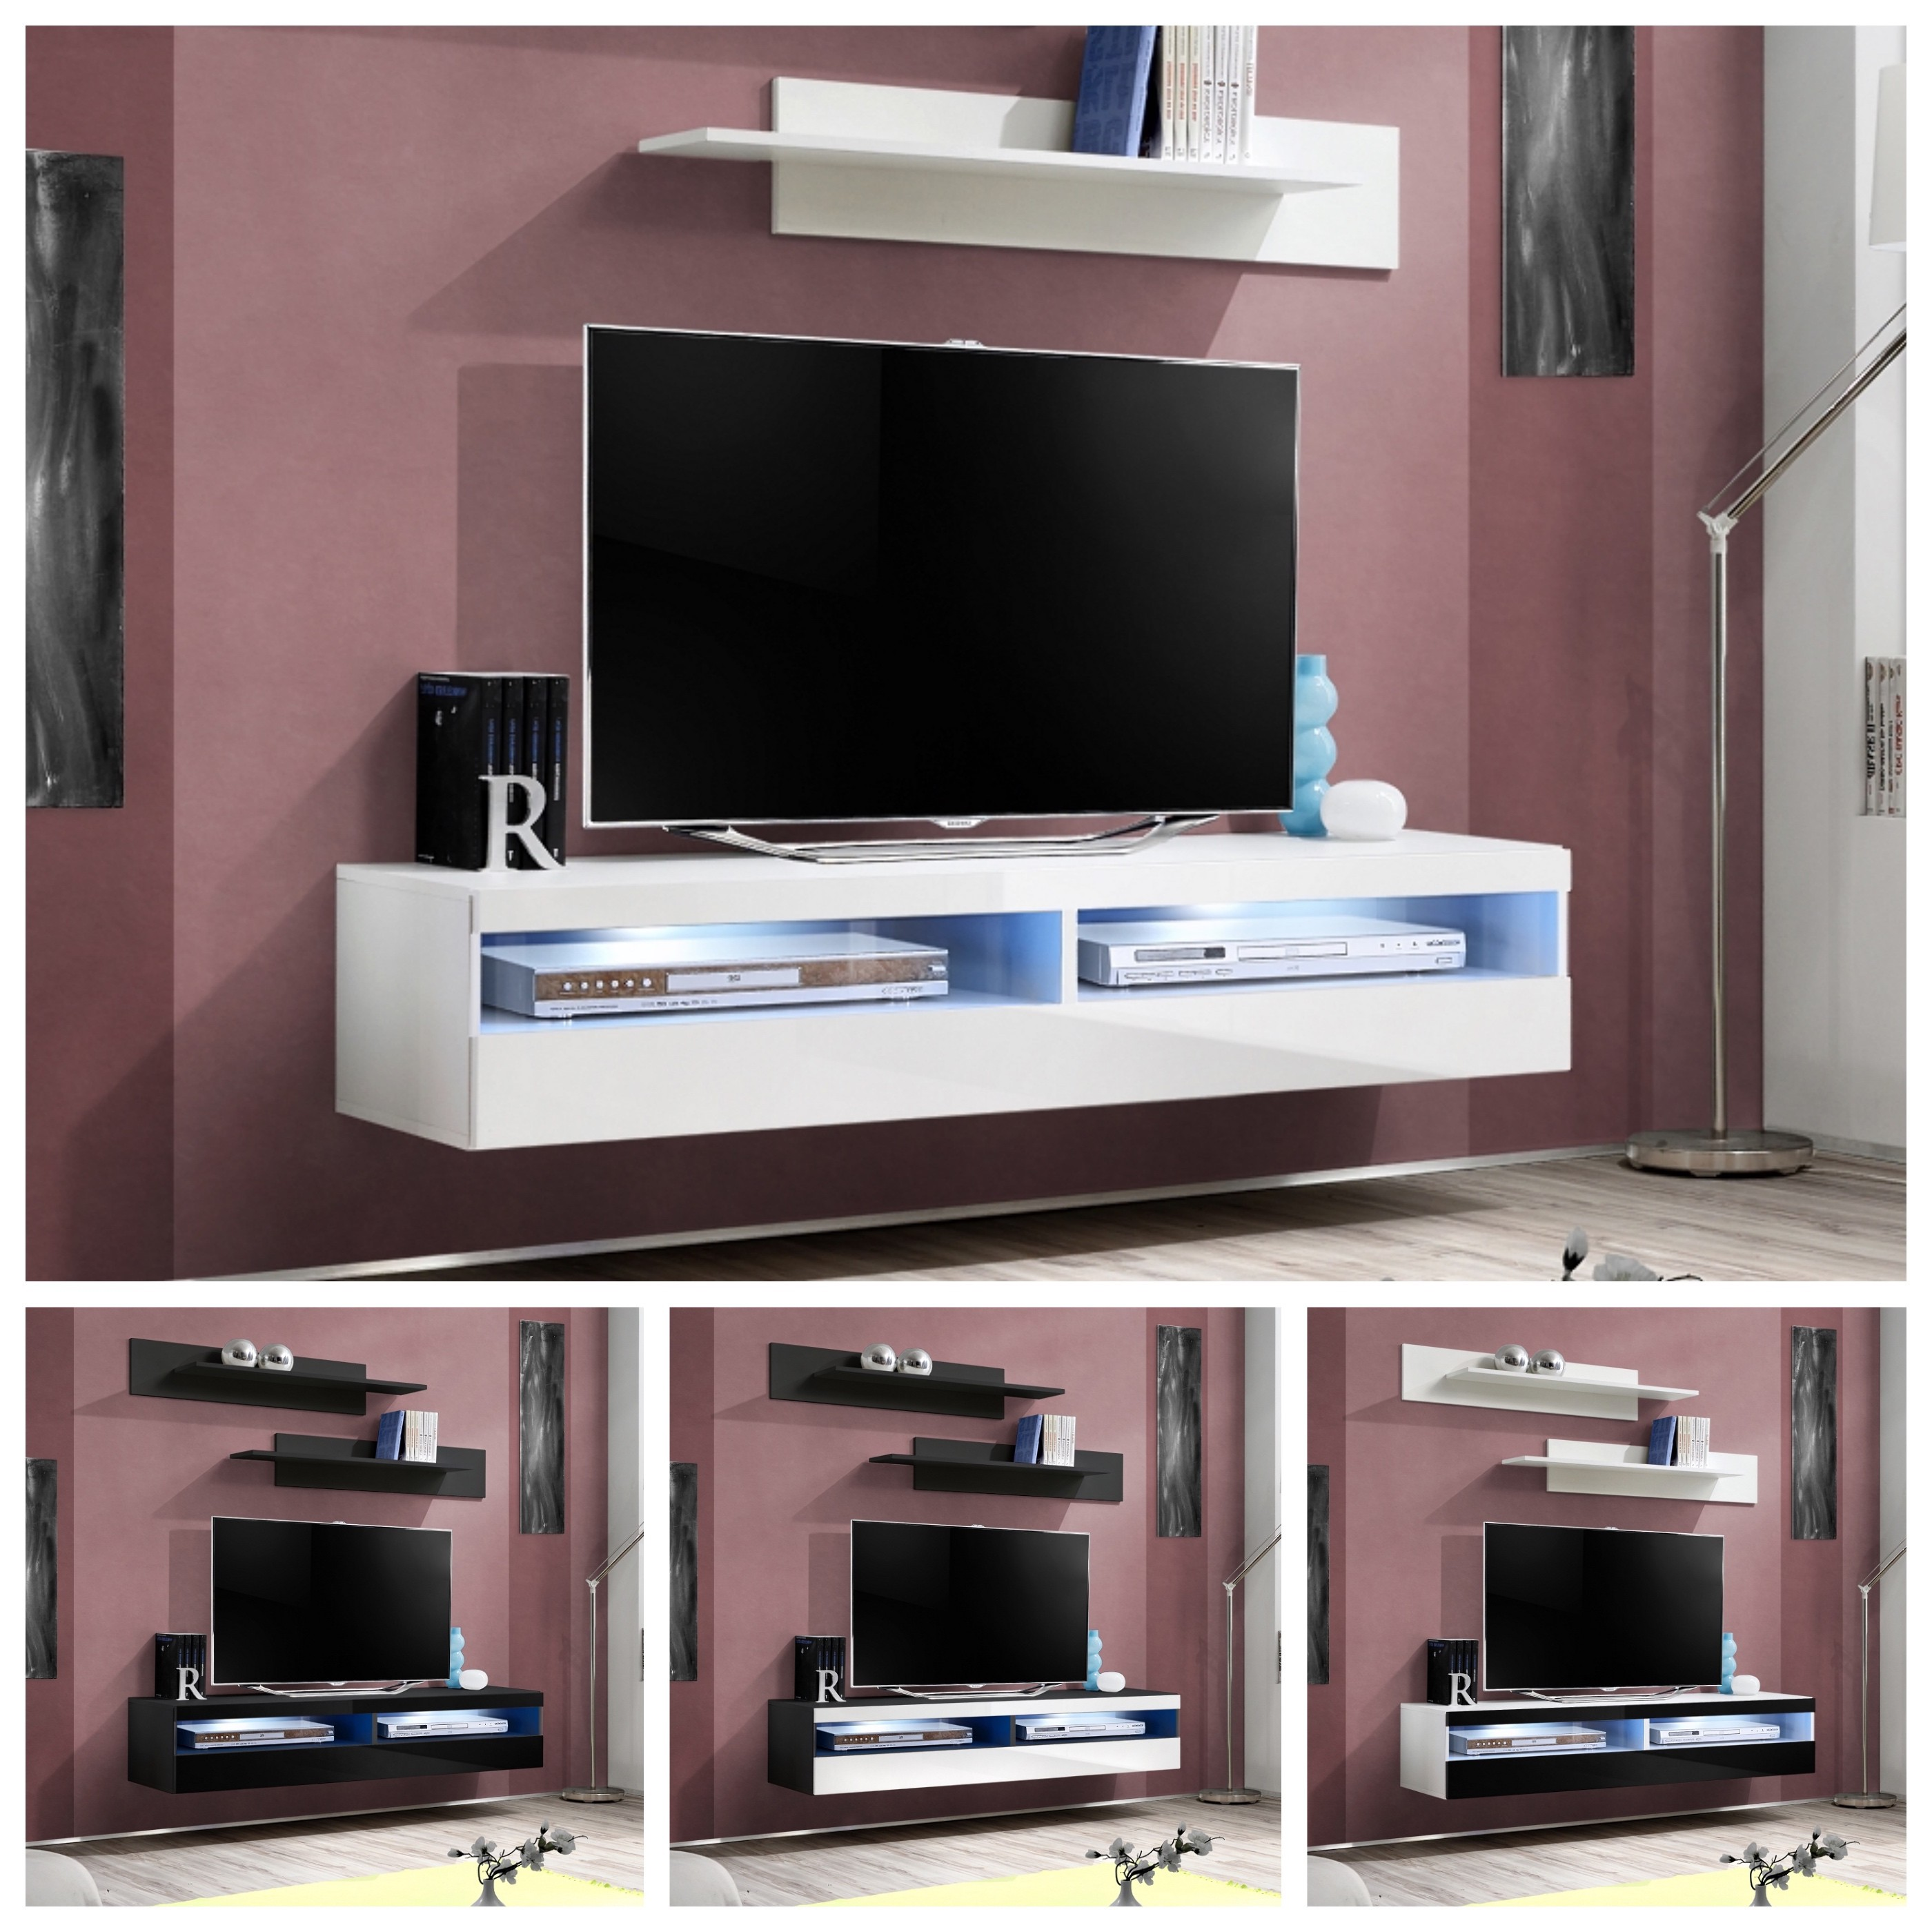 TV Table TV Cabinet FLY T35 High Gloss - IF-Furniture - high quality living  room furniture at the best price